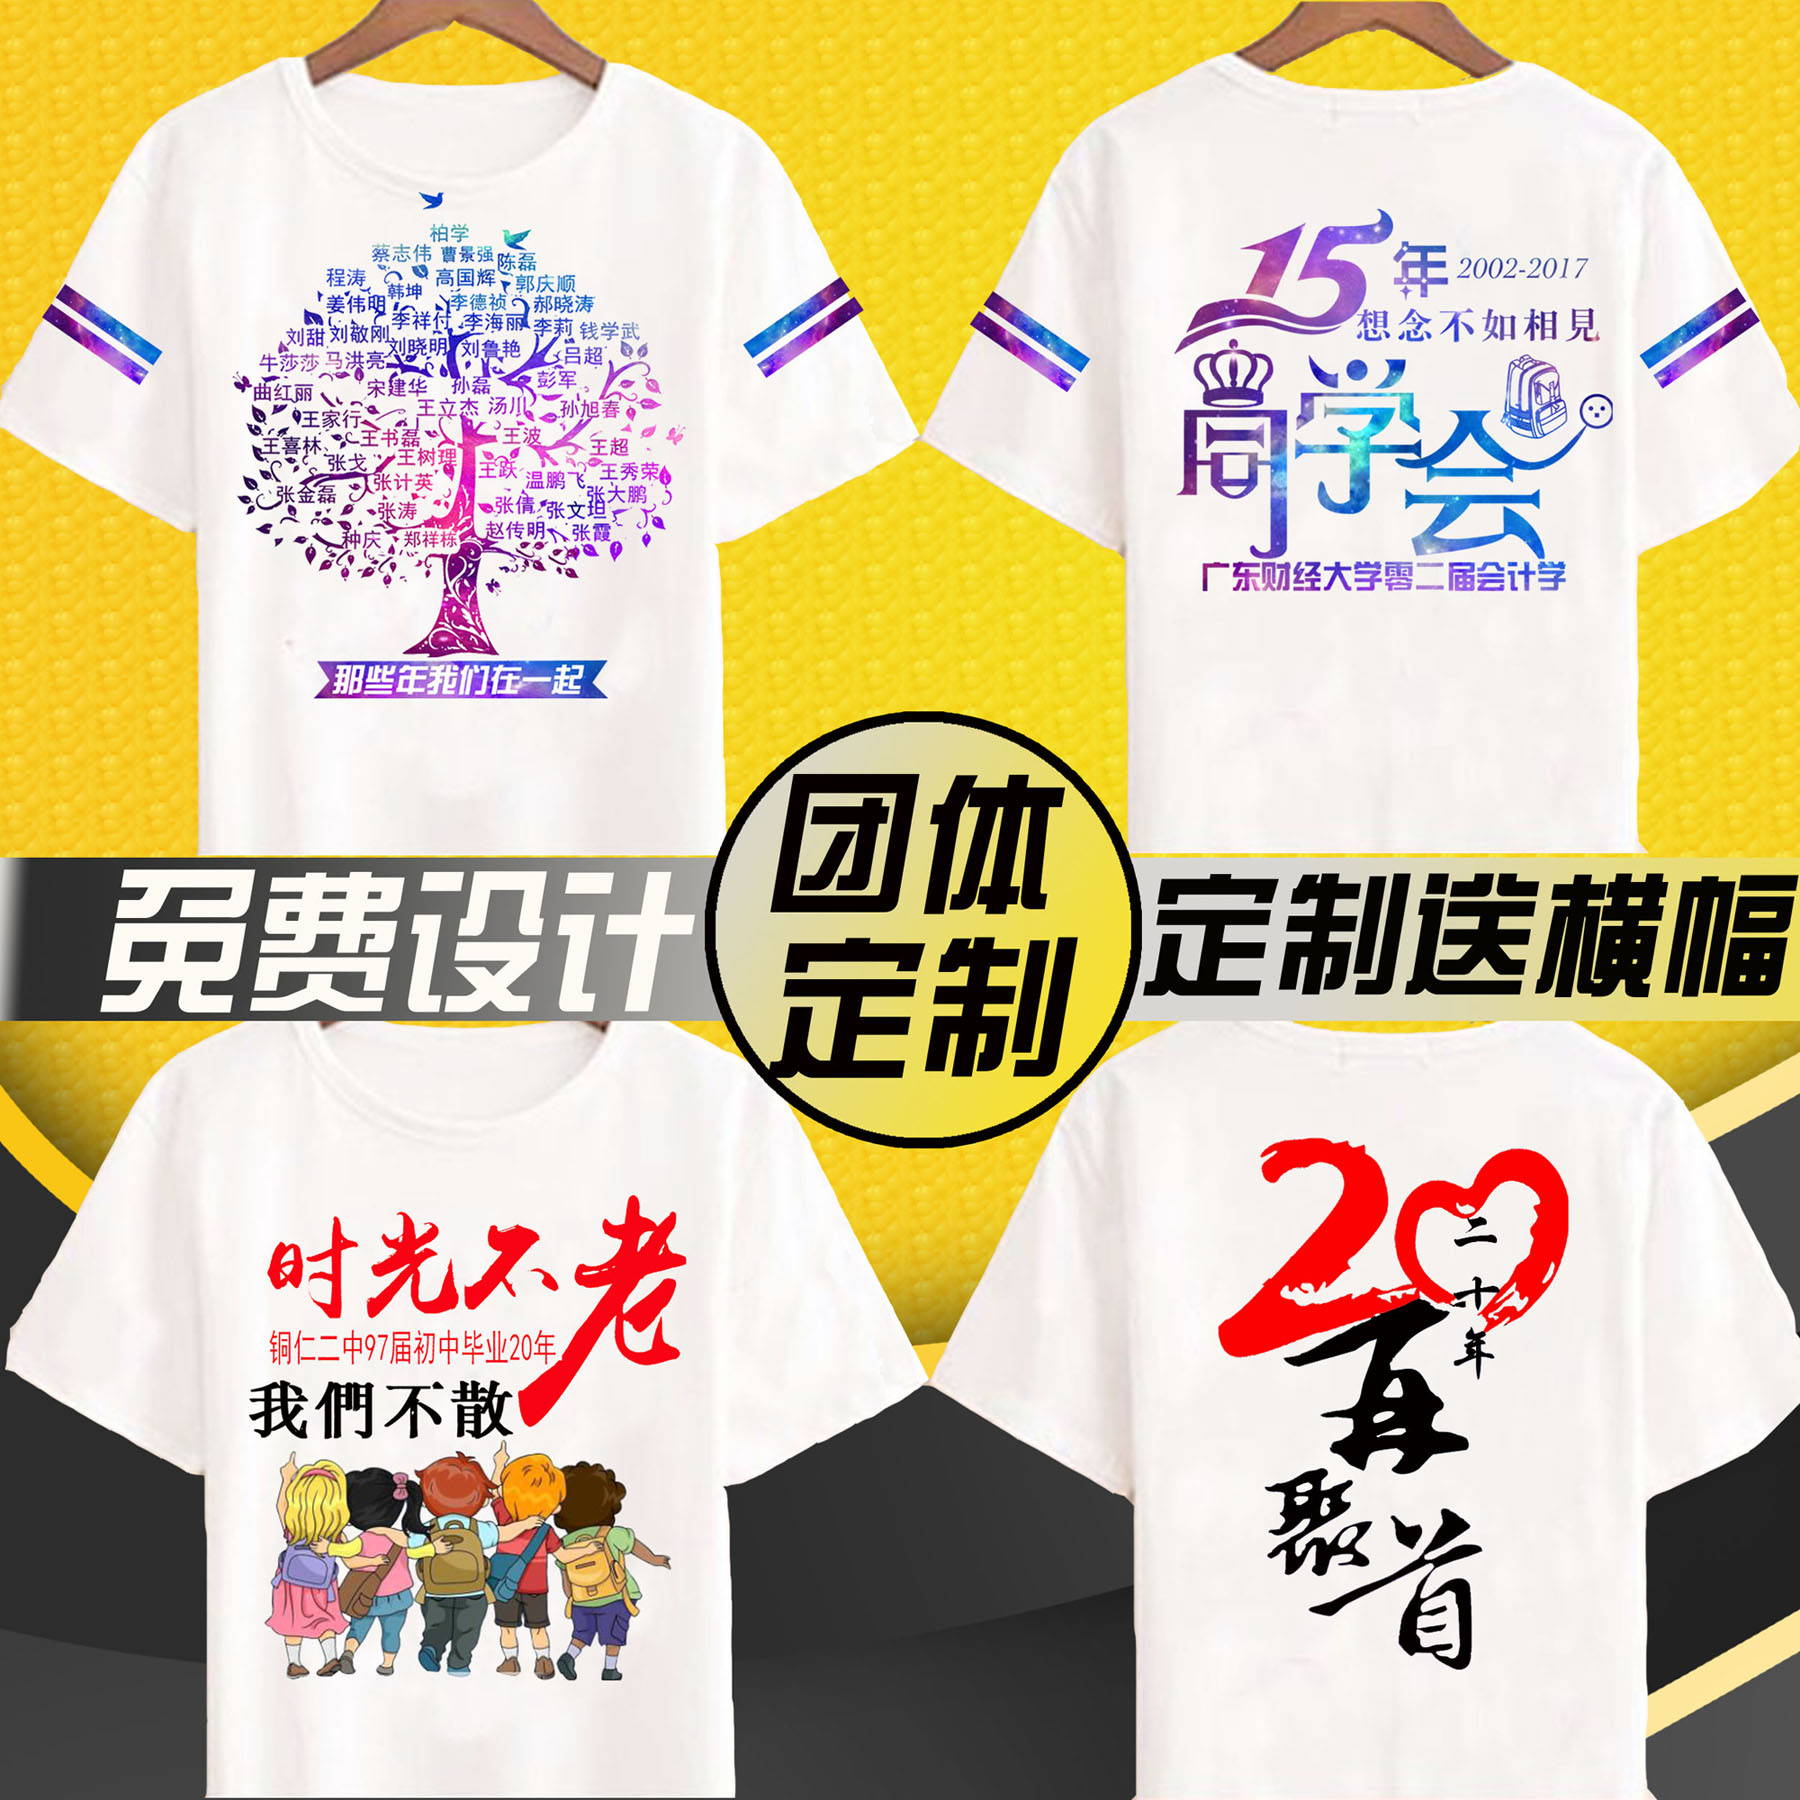 1fd105939c0 Classmates party clothes T-shirt custom-made class clothing custom  graduation clothing cultural clothing corporate culture work clothes set